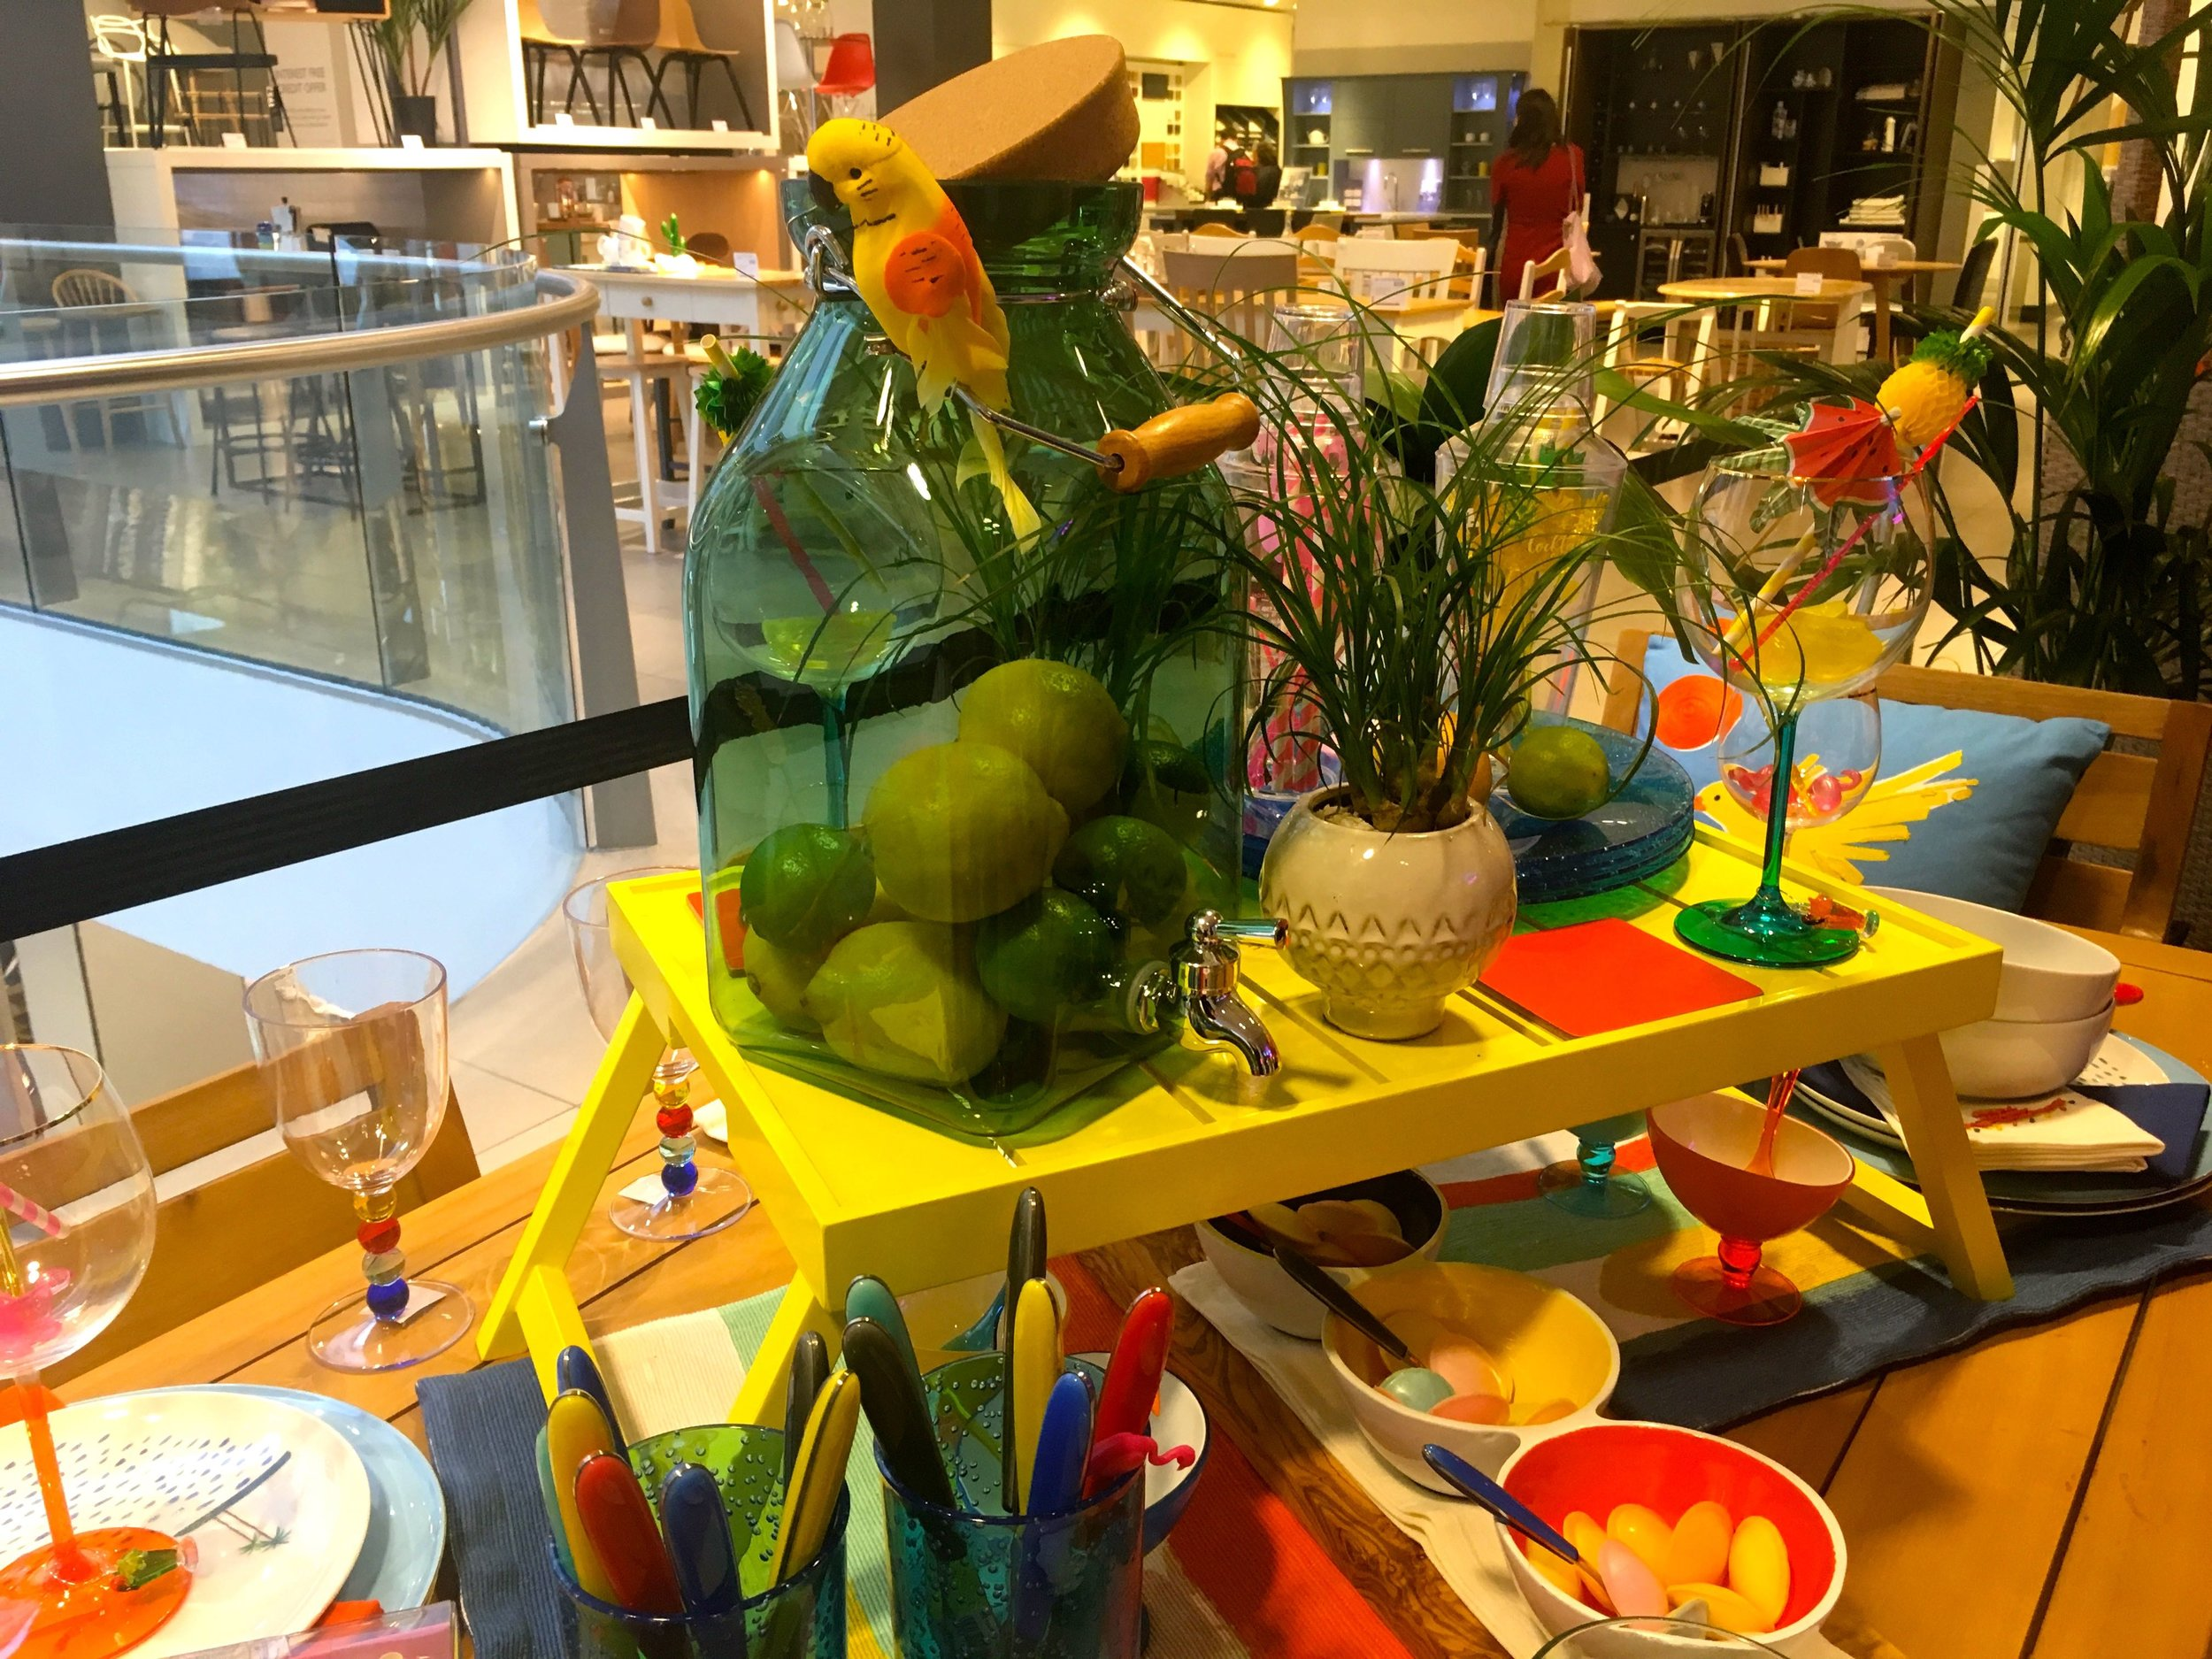 A colourful feast of a table at John Lewis in Oxford Street